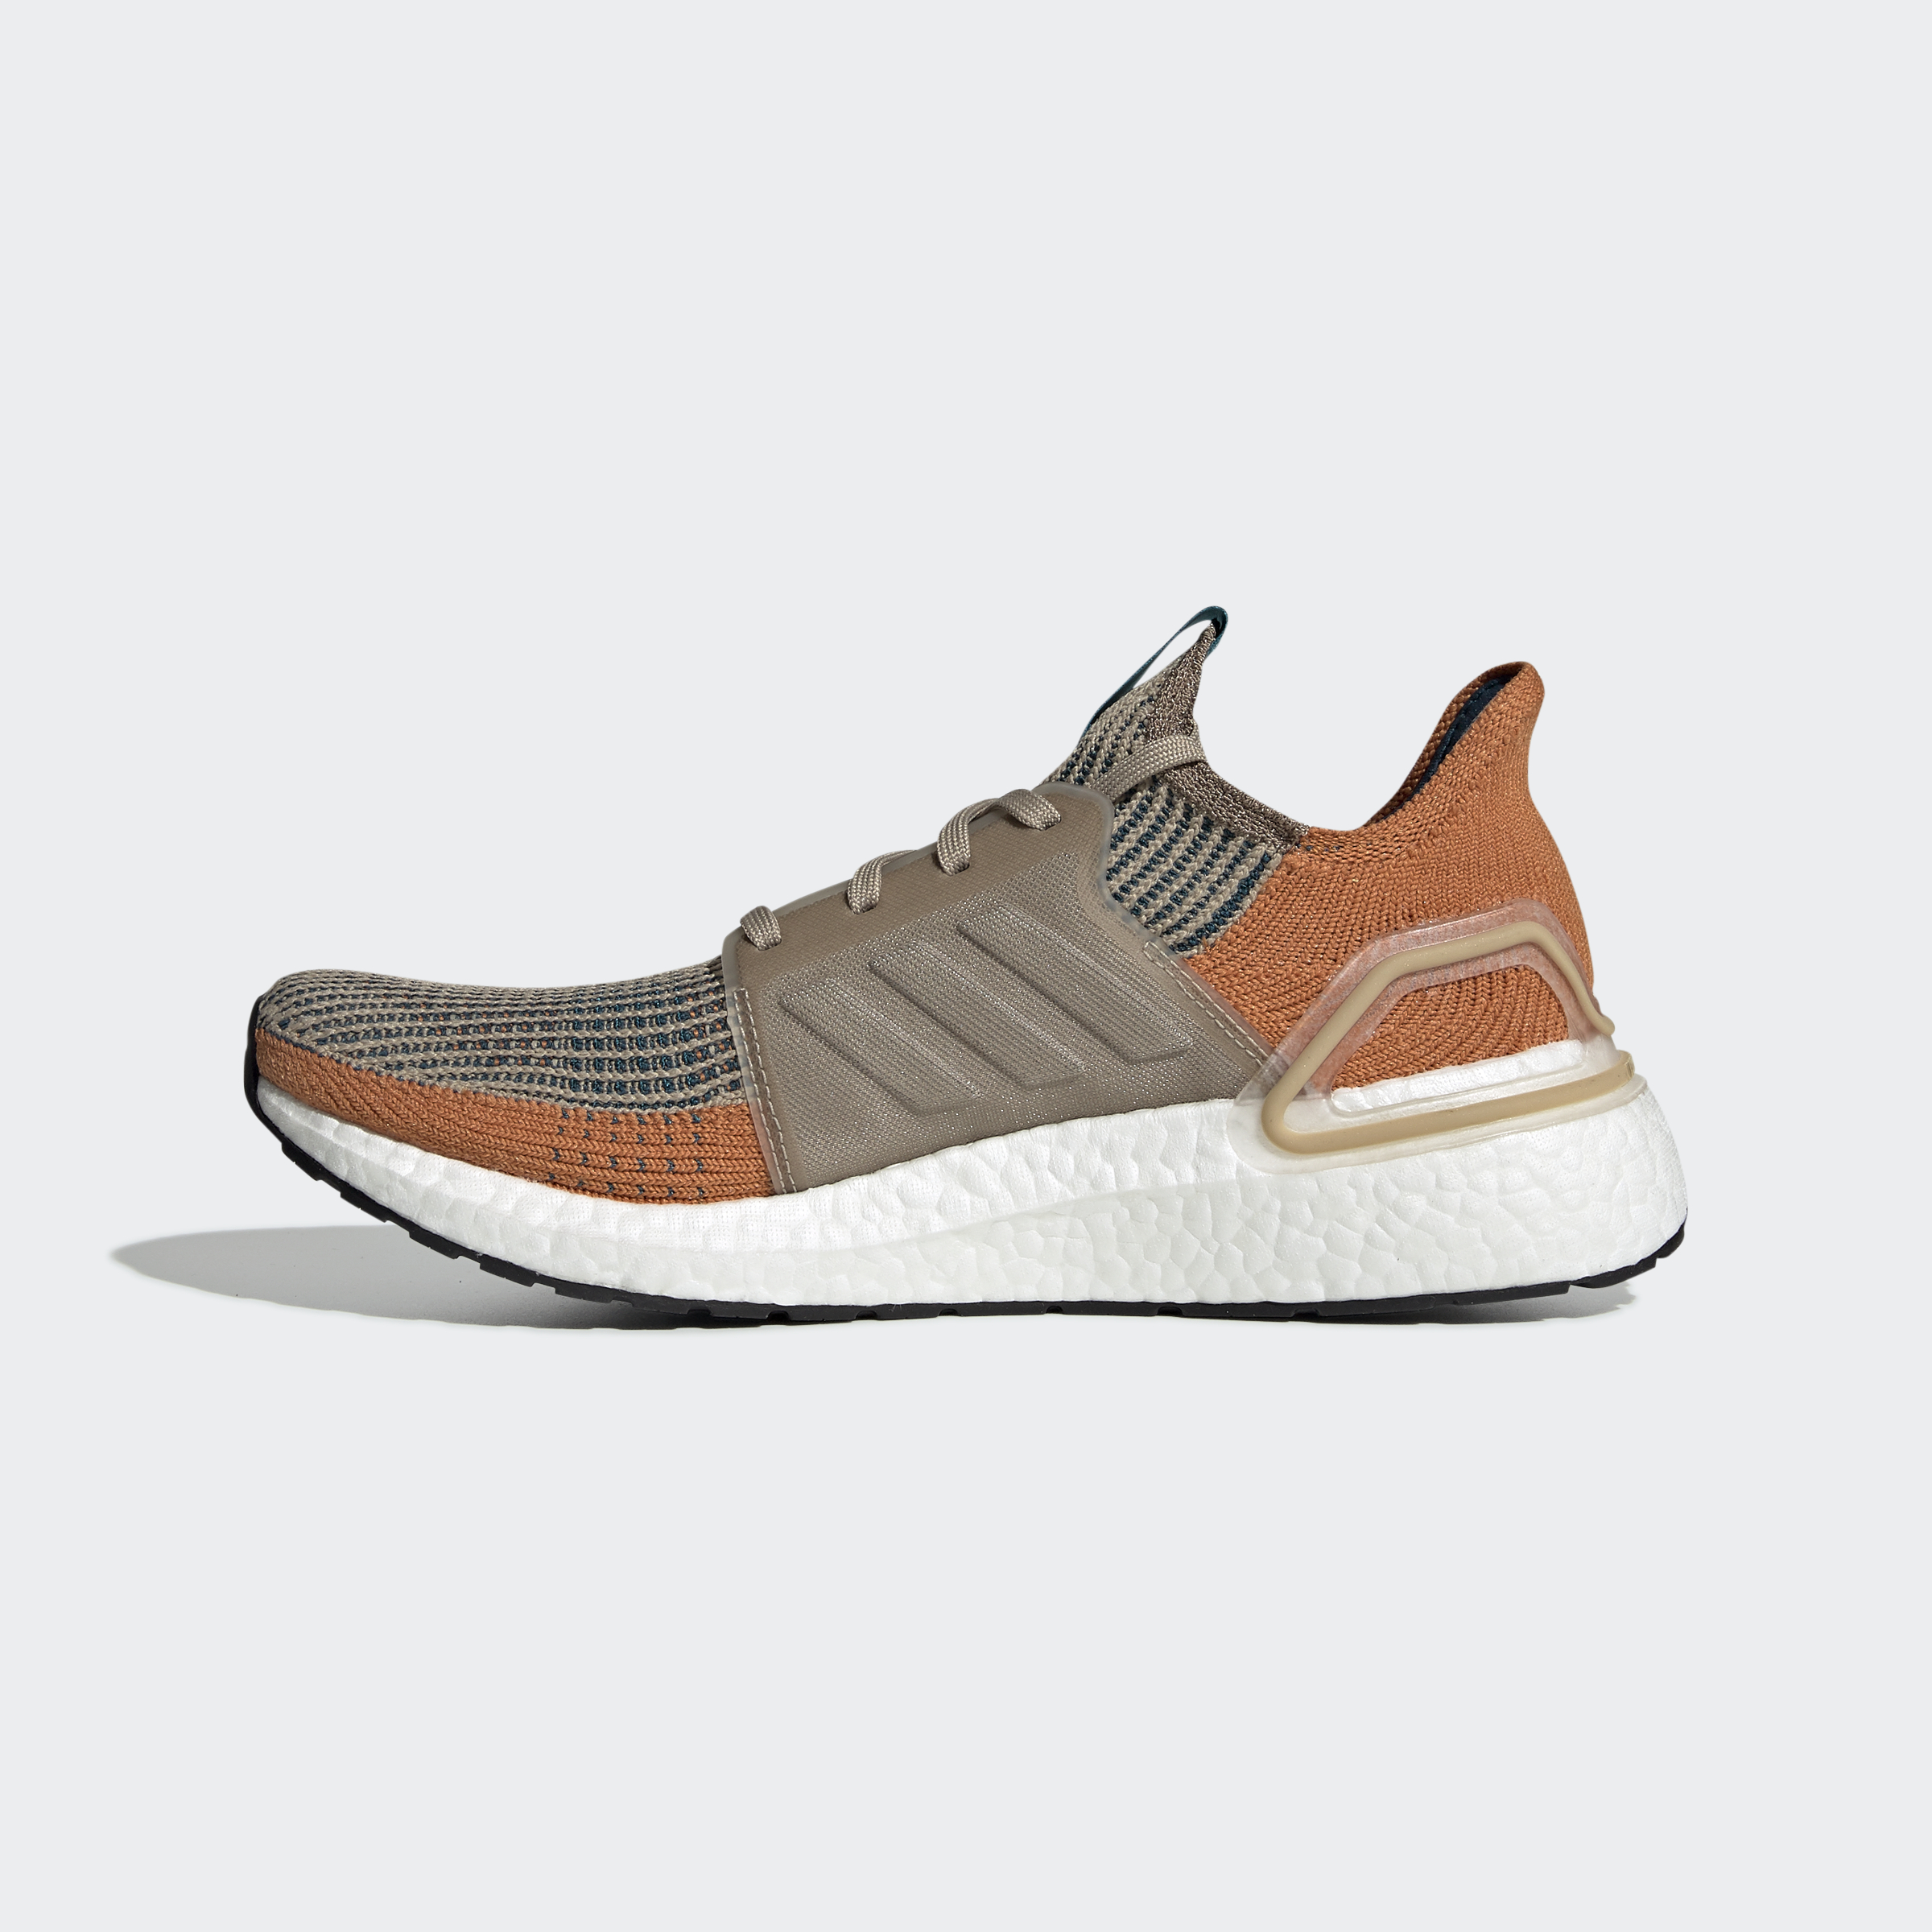 adidas-Ultraboost-19-Shoes-Athletic-amp-Sneakers thumbnail 112